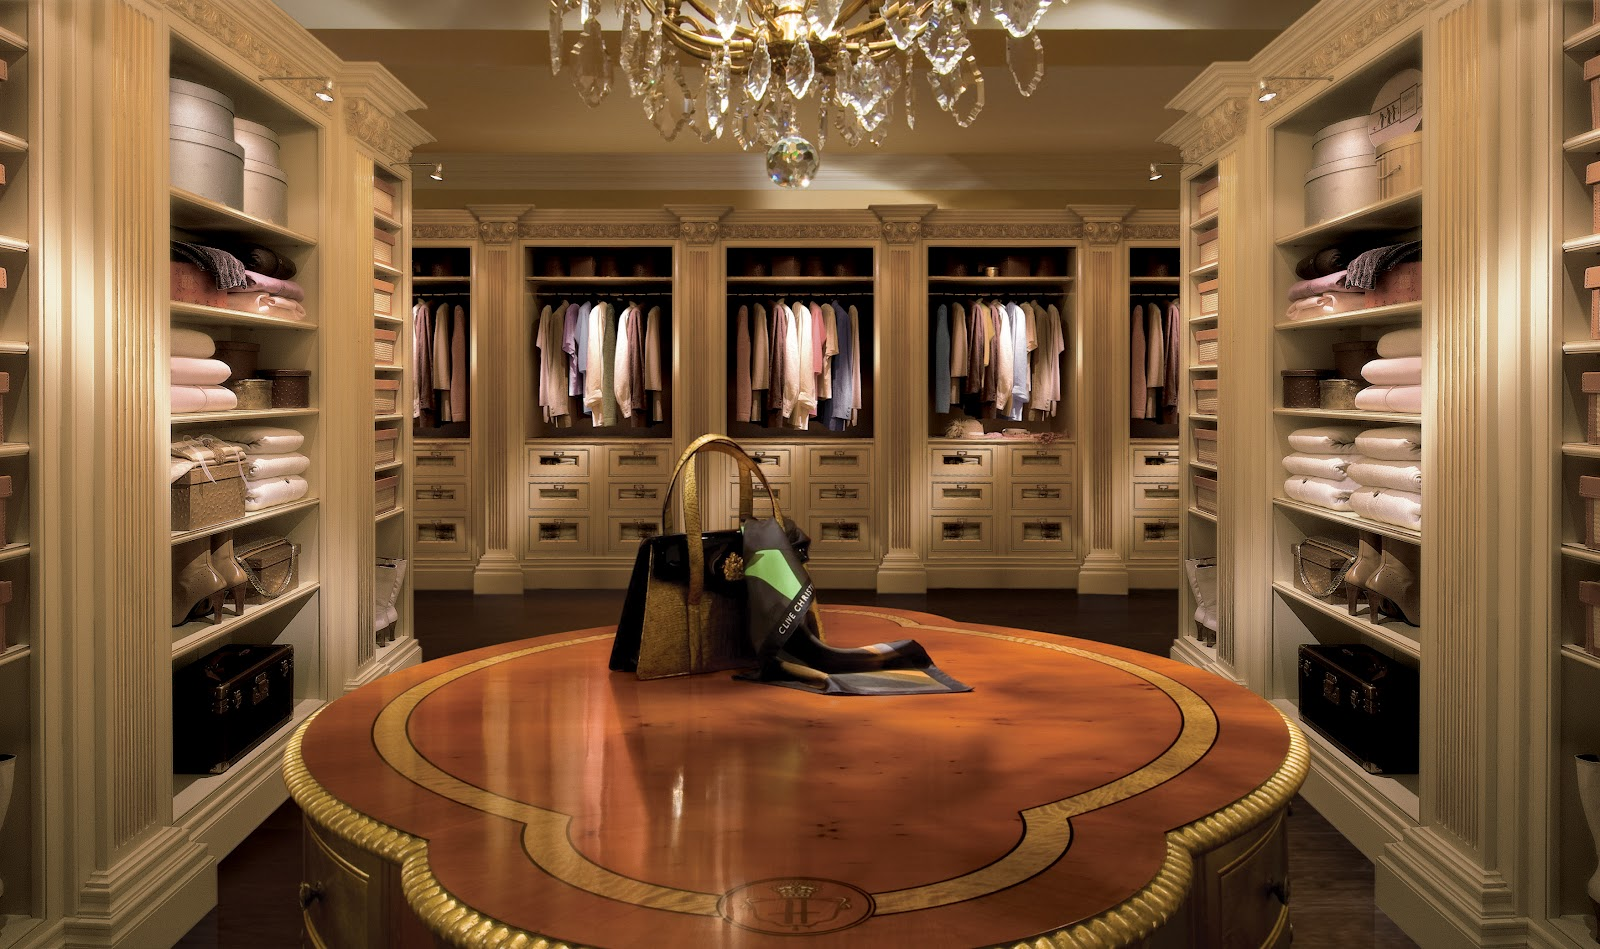 Attirant Clive Christian Luxury Dressing Room Furniture